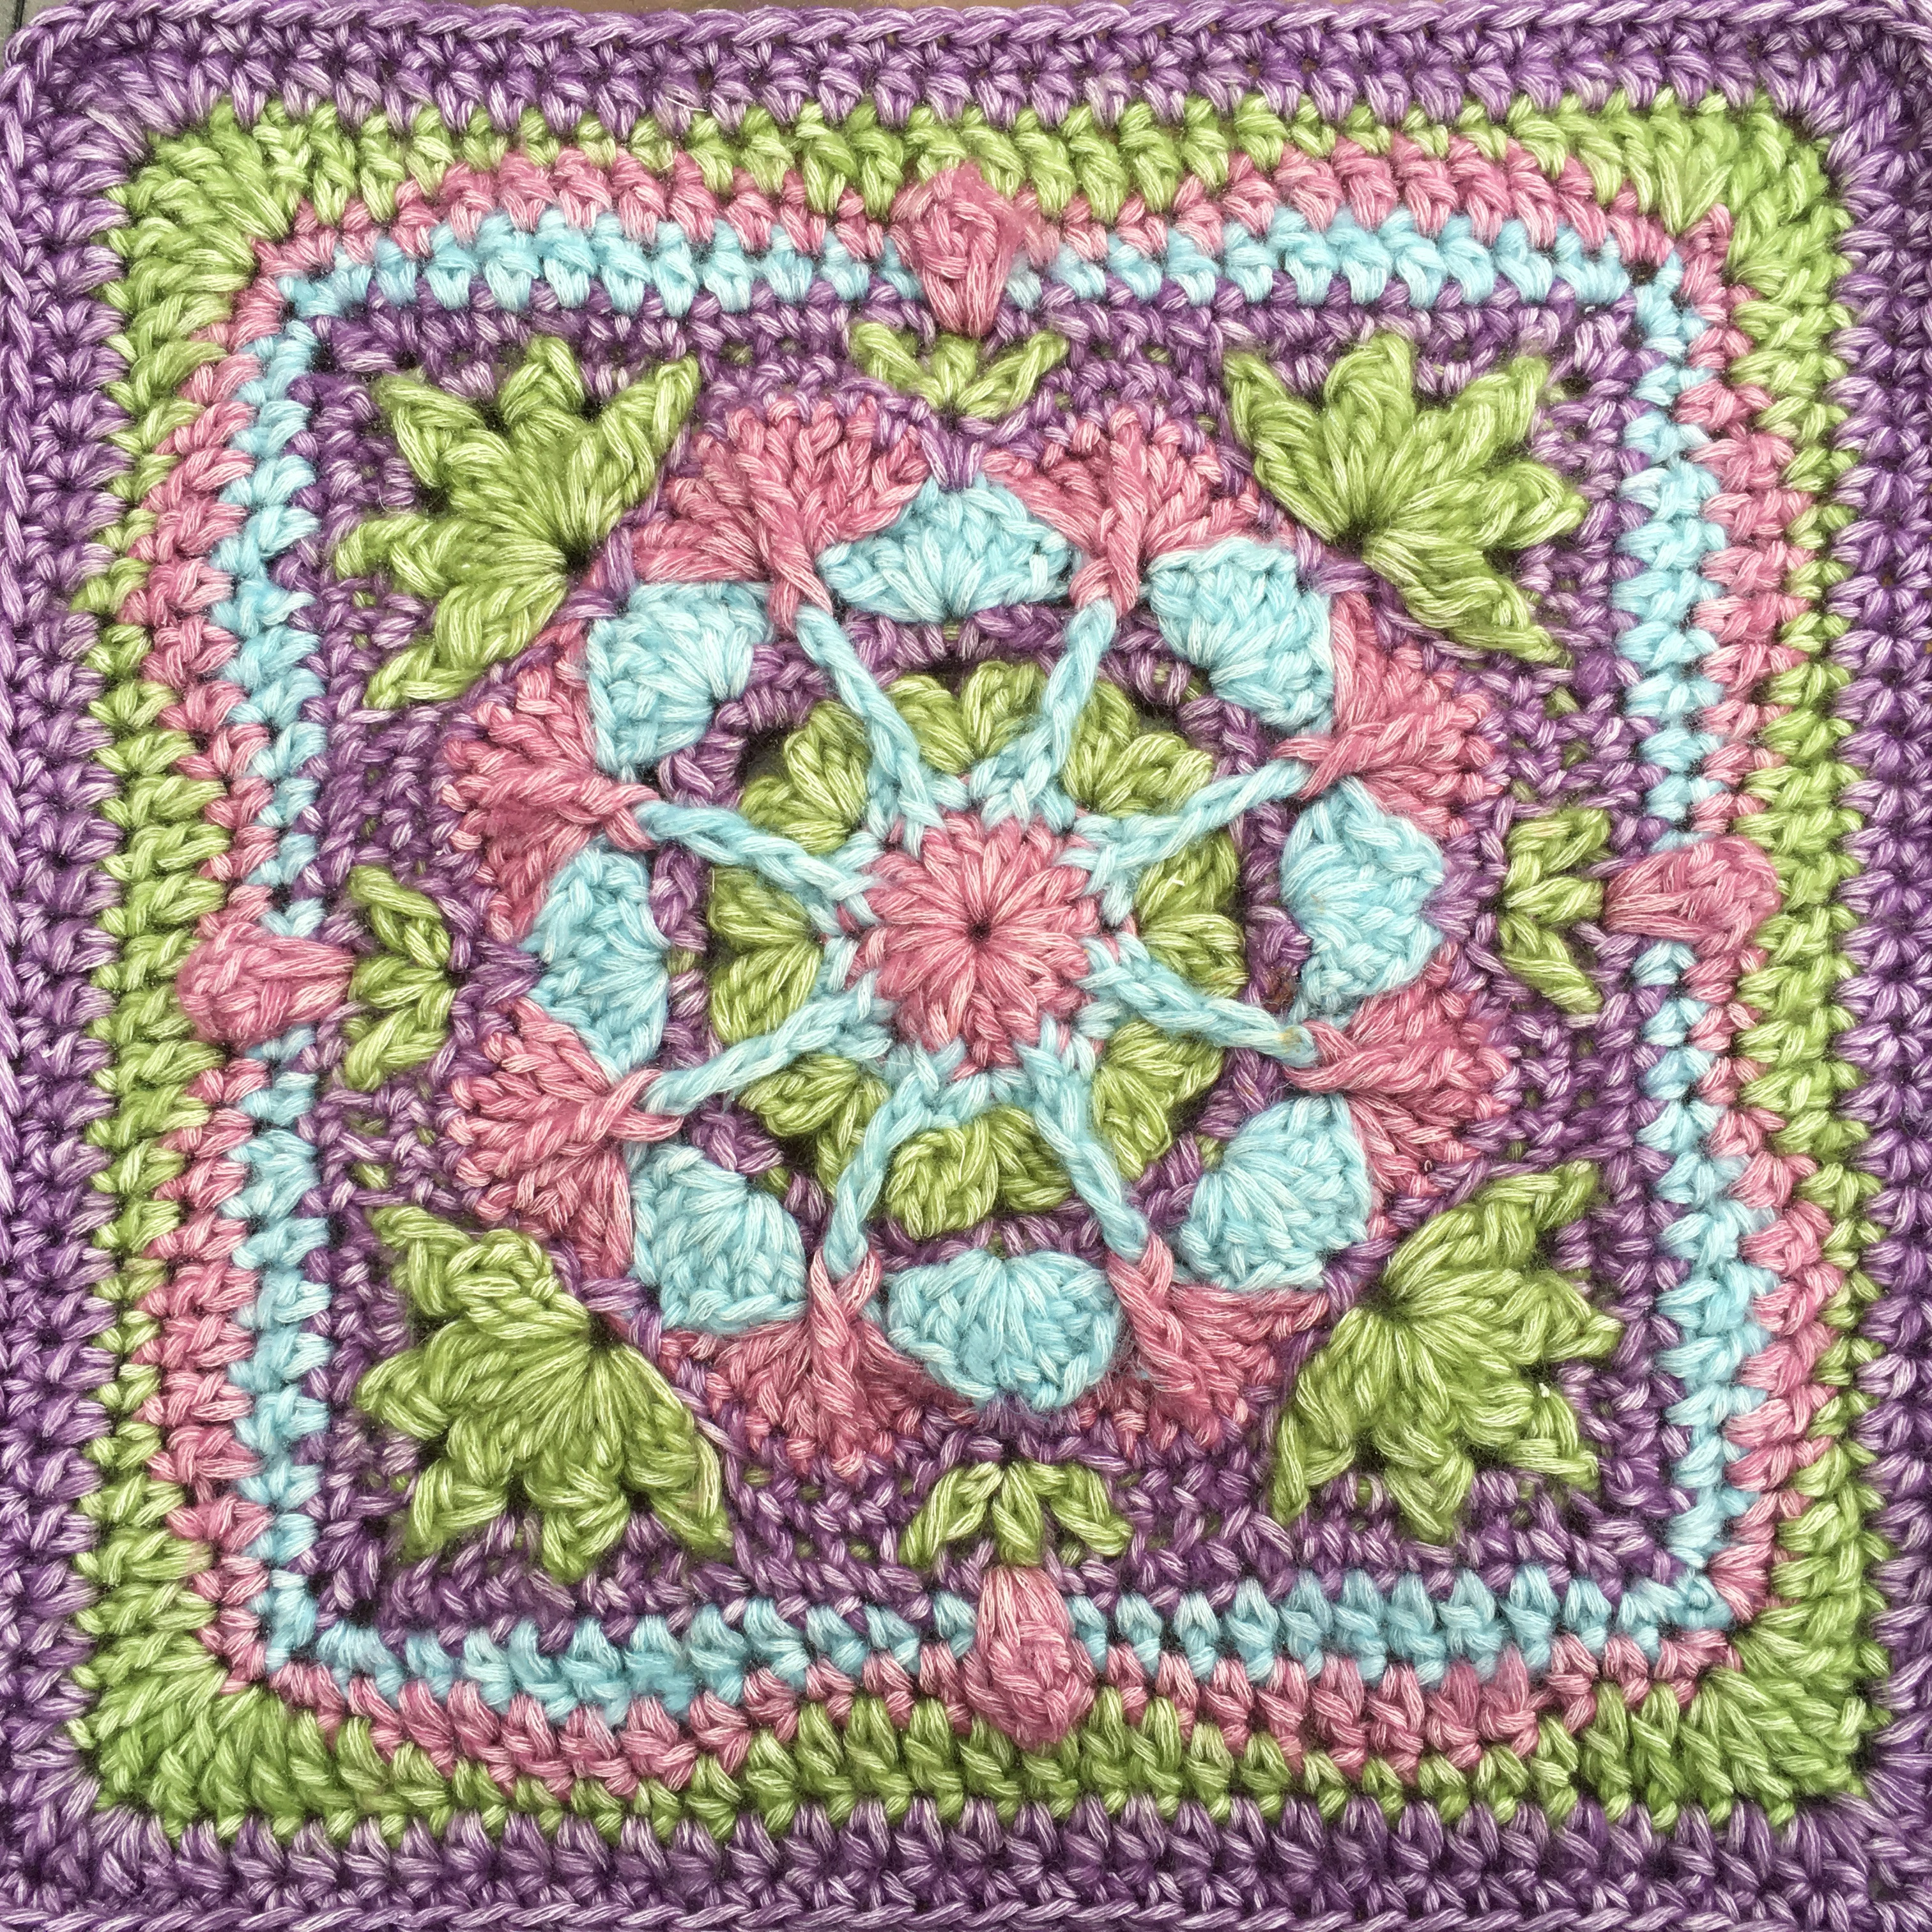 Afghan Square Crochet Patterns New New Afghan Square Design English Garden Afghan Square Of Amazing 50 Pics Afghan Square Crochet Patterns